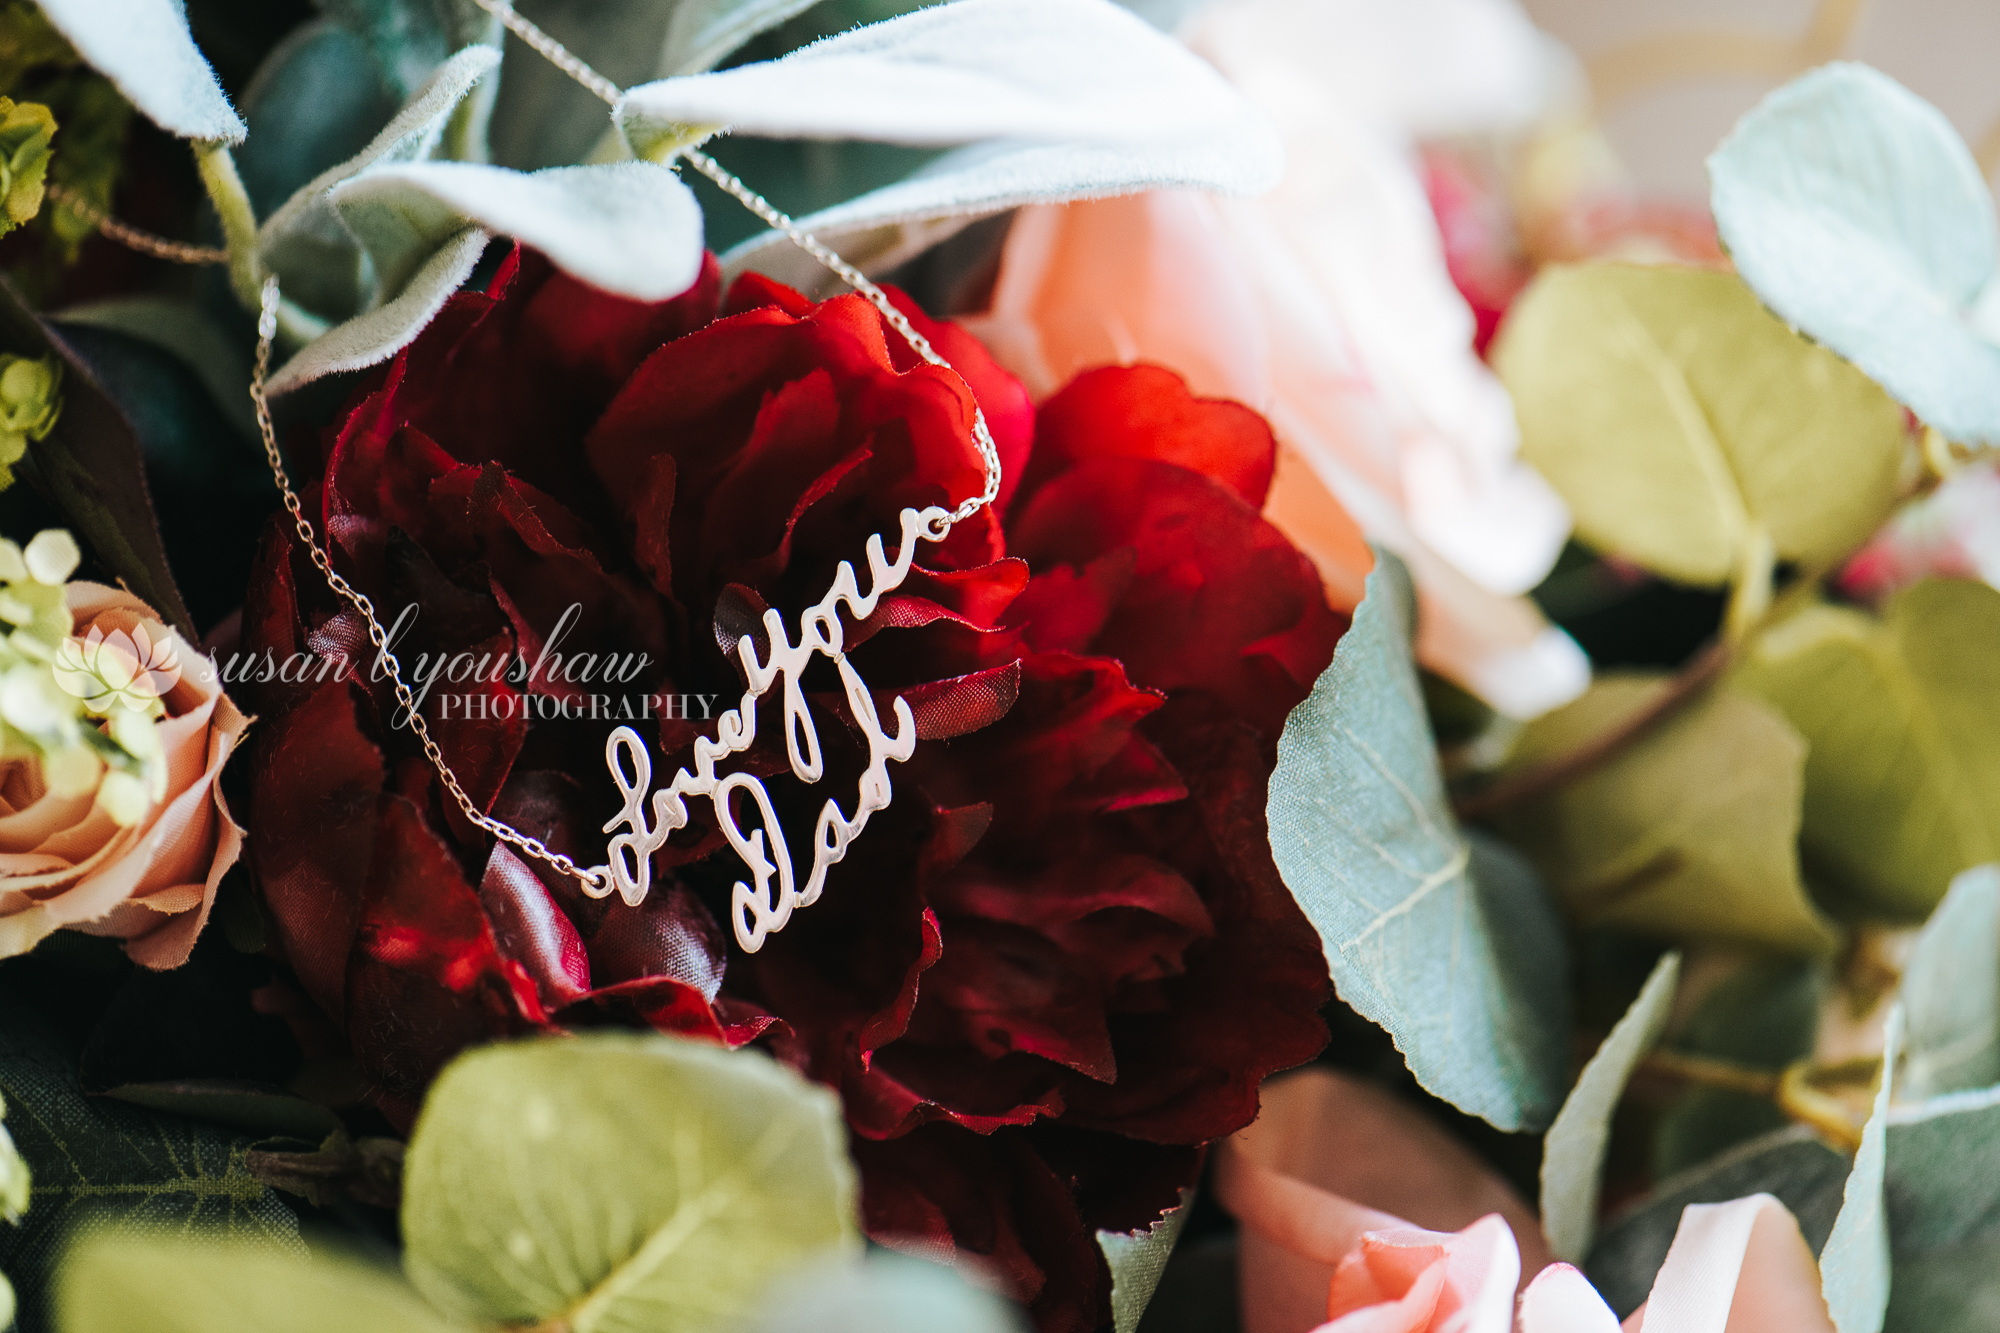 Chynna and John Wedding 05-18-2019 SLY Photography-4.jpg